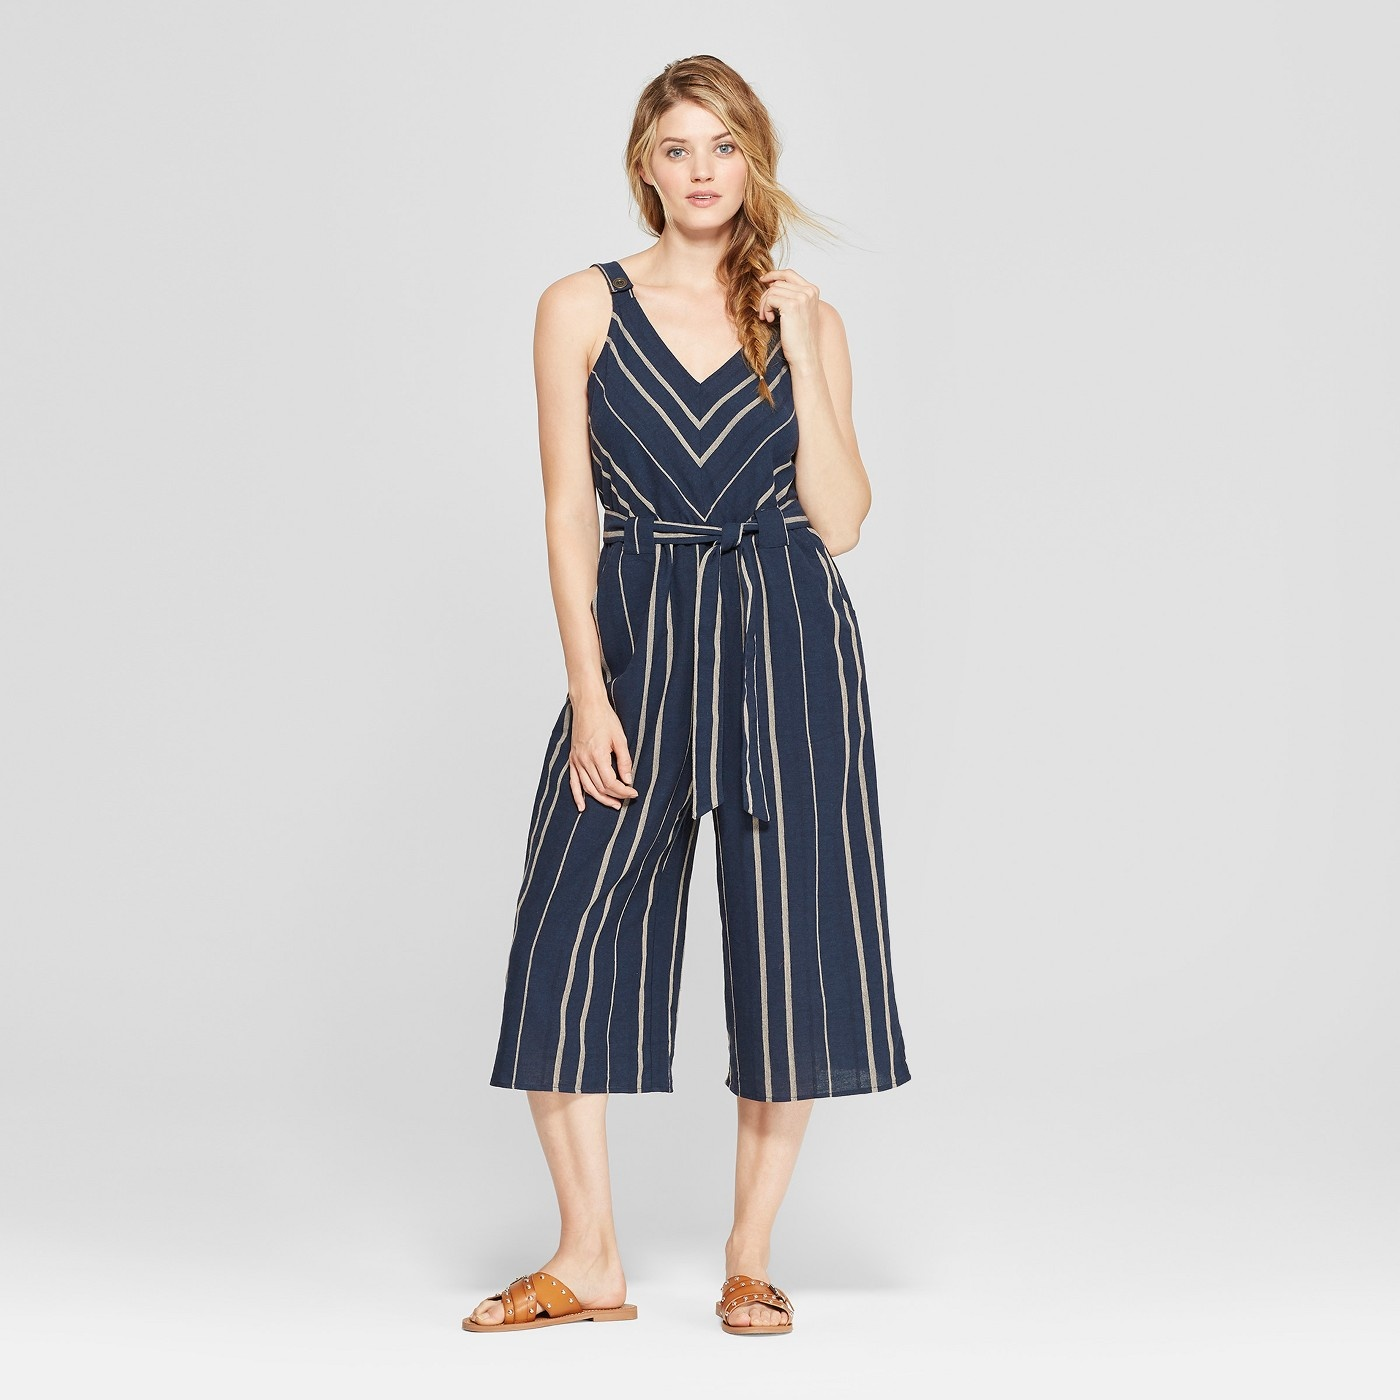 de694092e 10 fall items we're obsessed with from Target's Universal Thread line -  Motherly